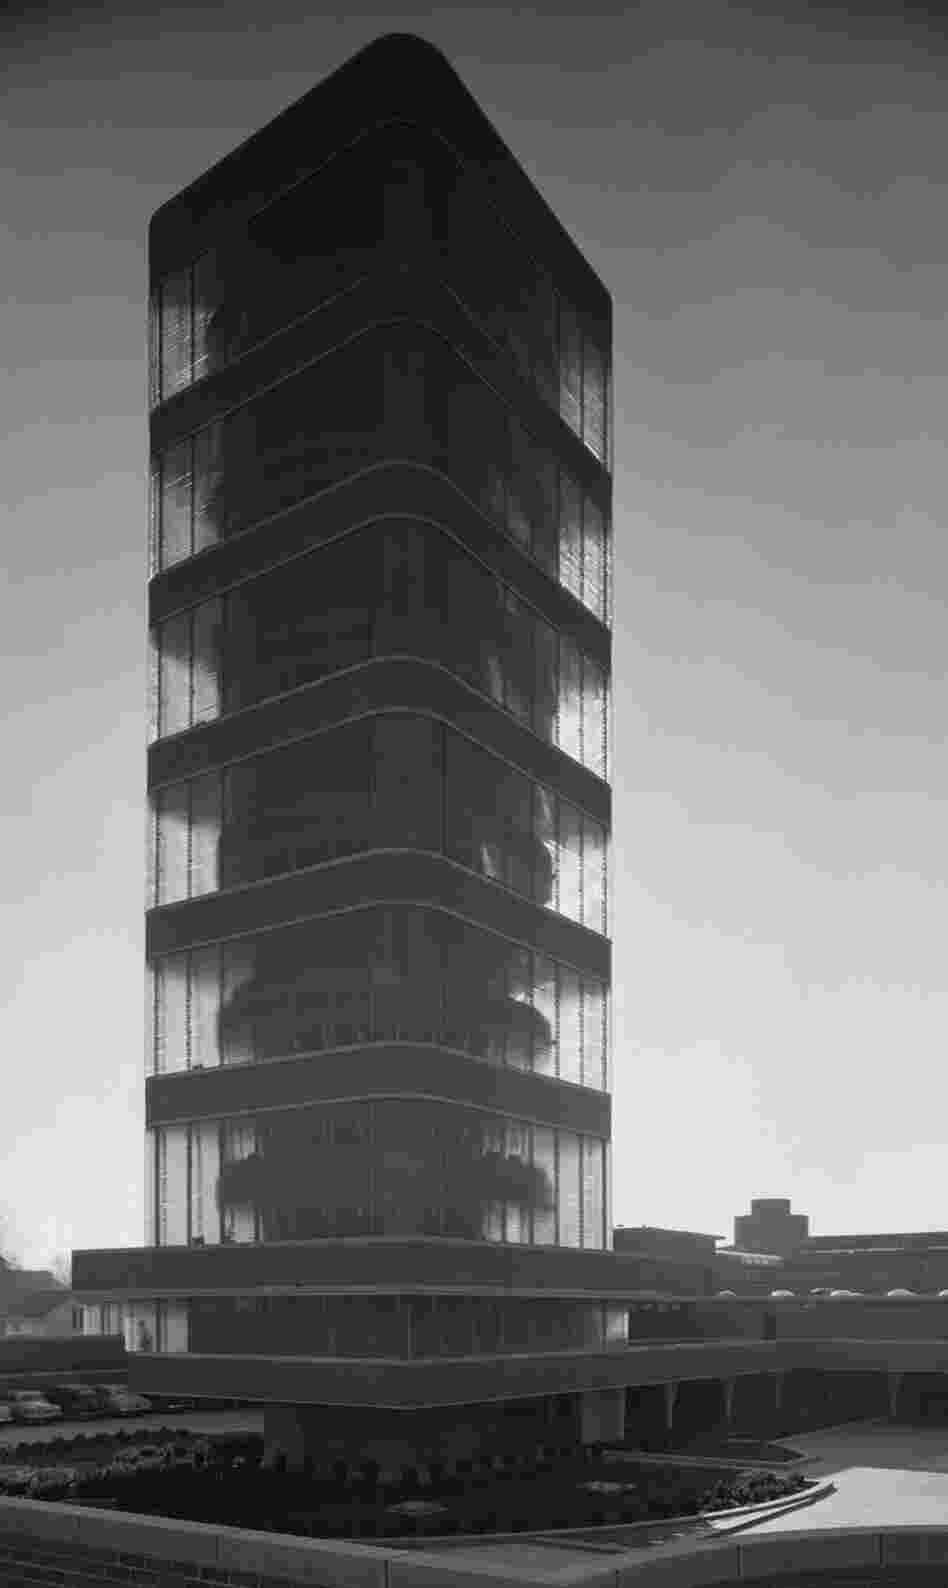 Johnson Wax Tower, Frank Lloyd Wright, Racine, Wis., 1950